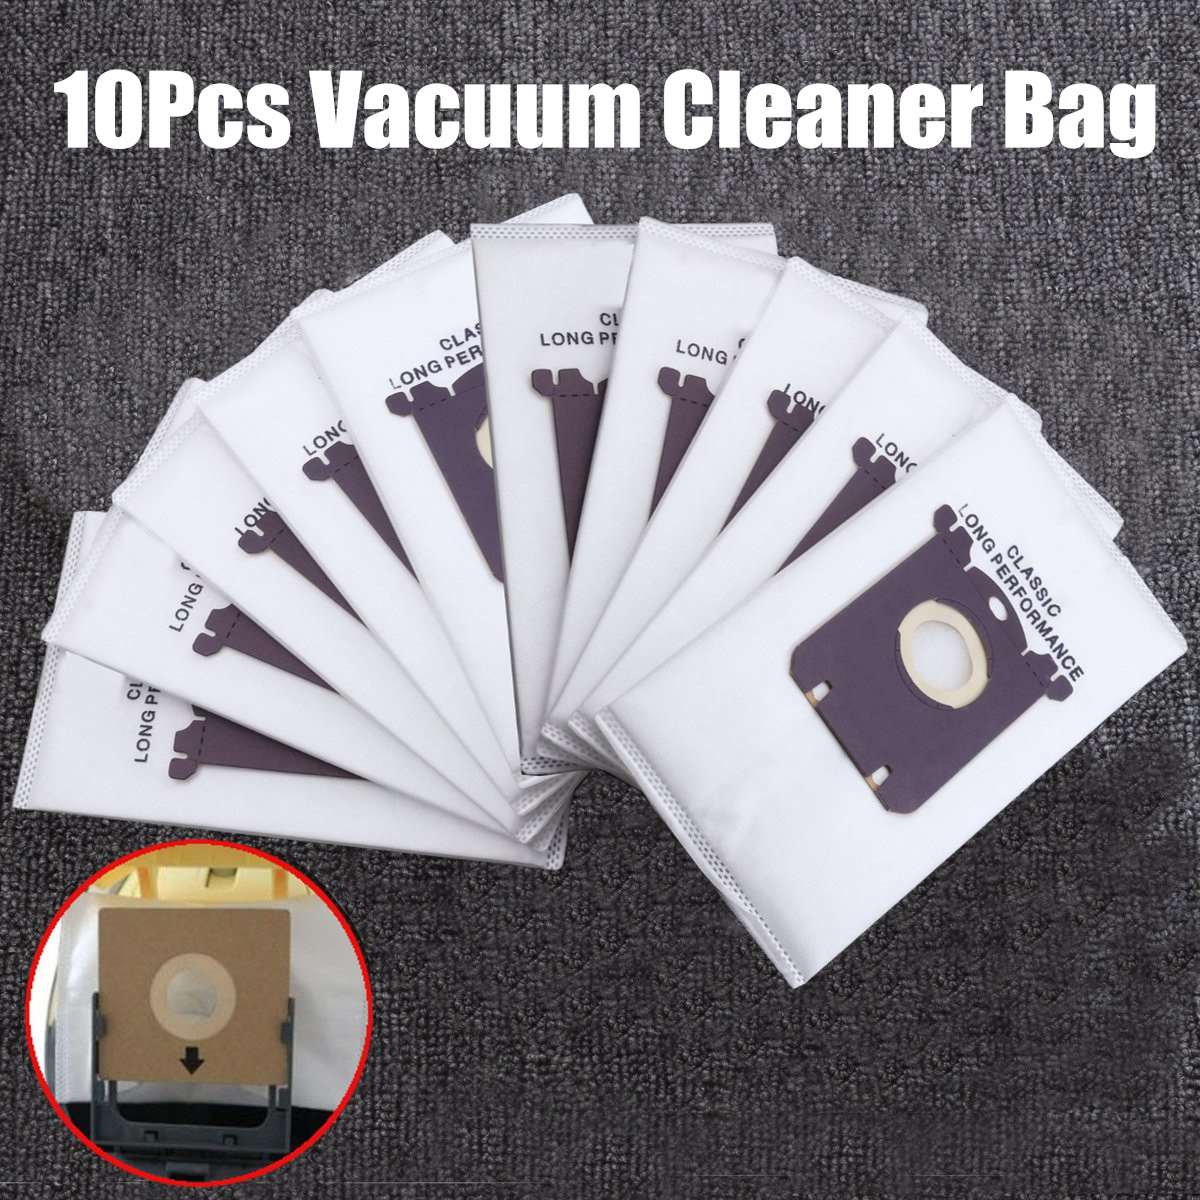 super price 10x Vacuum Cleaner Dust Bags s-bag fit for Philips Electrolux Cleaner цены